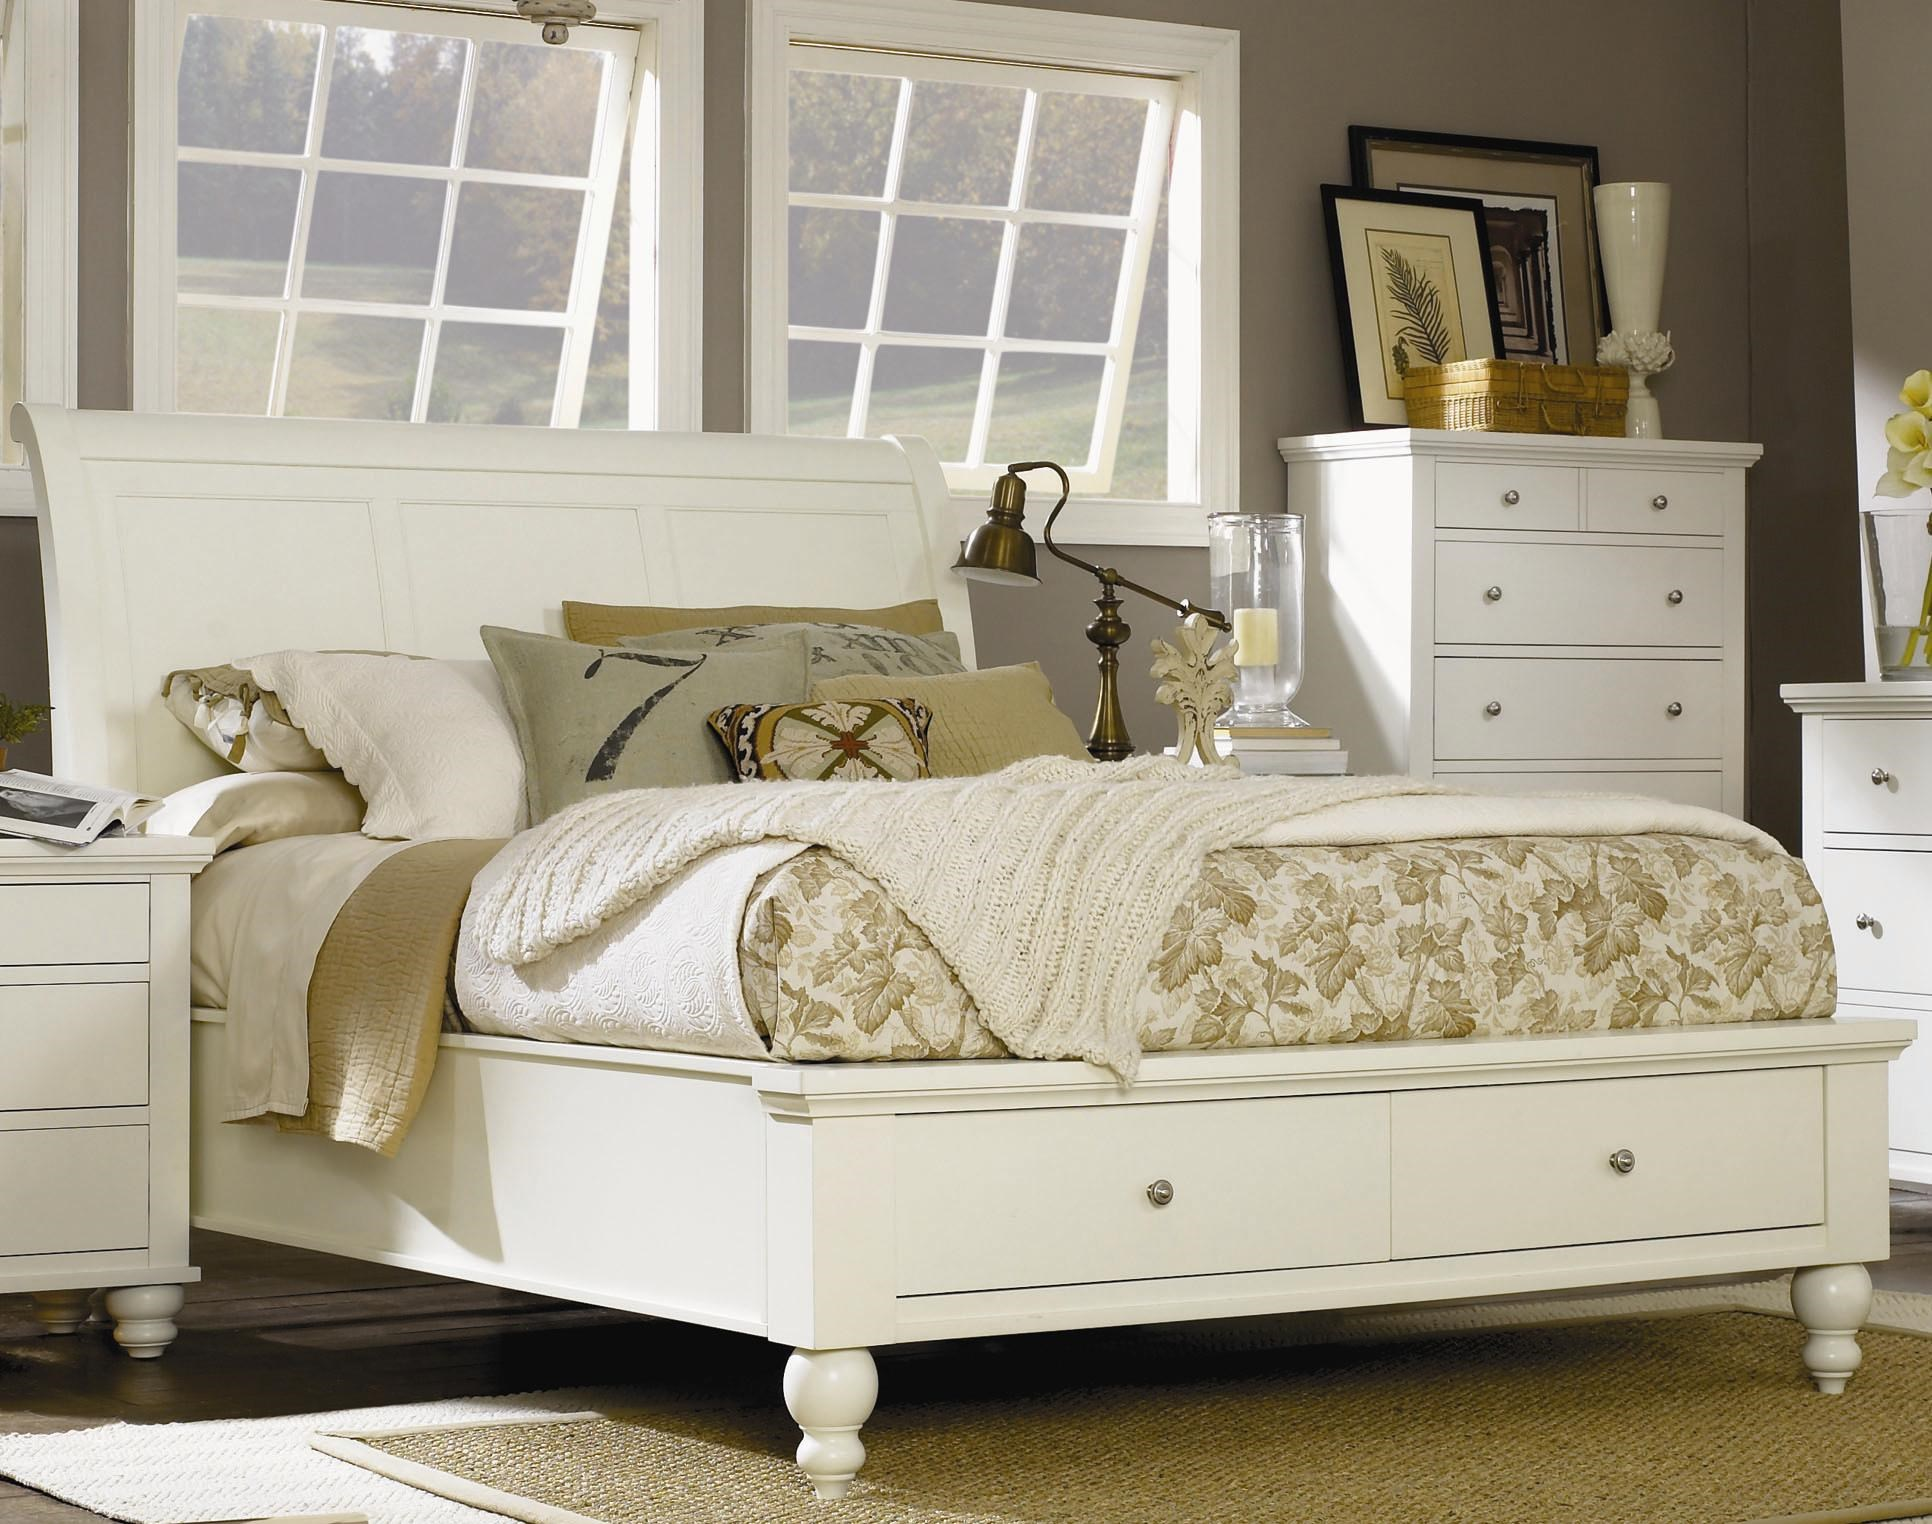 Bedding Storage Clinton King Size Bed With Sleigh Headboard Drawer Storage Footboard By Highland Court At Morris Home